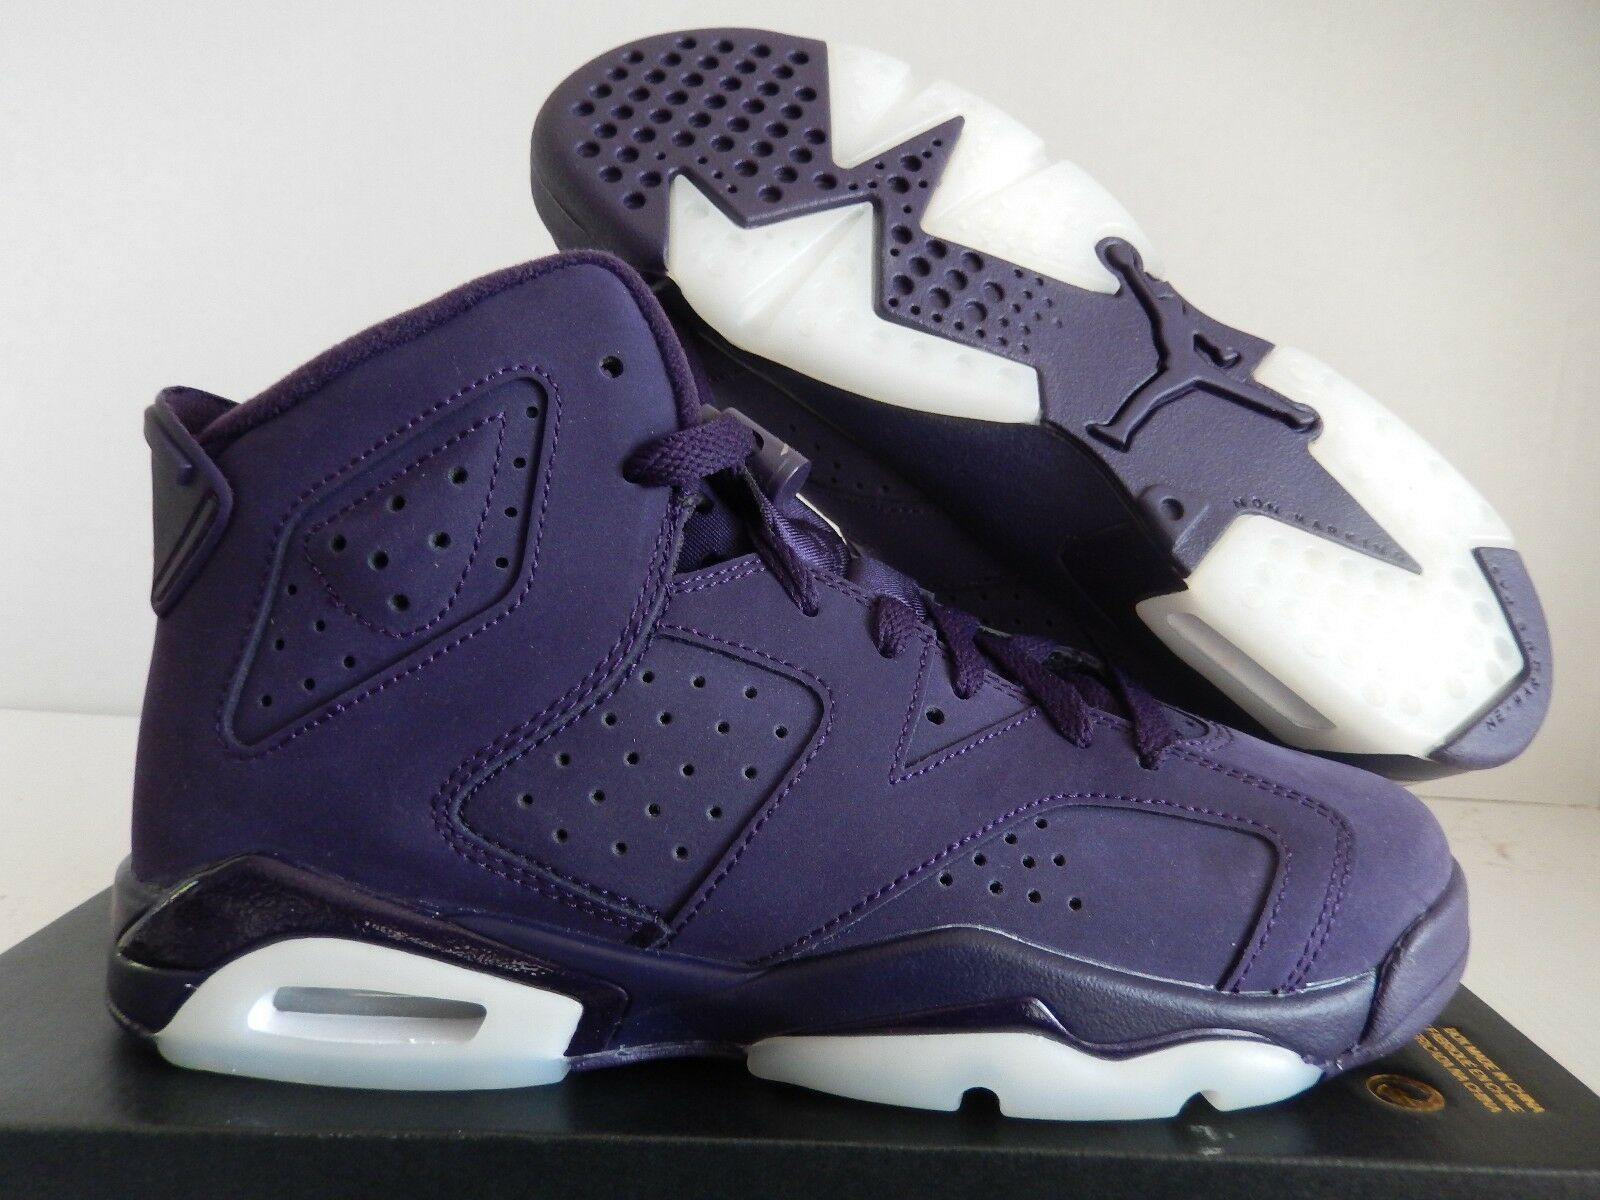 NIKE AIR JORDAN 6 RETRO GG PURPLE DYNASTY SZ 7Y- femmes SZ 8.5 [543390-509]